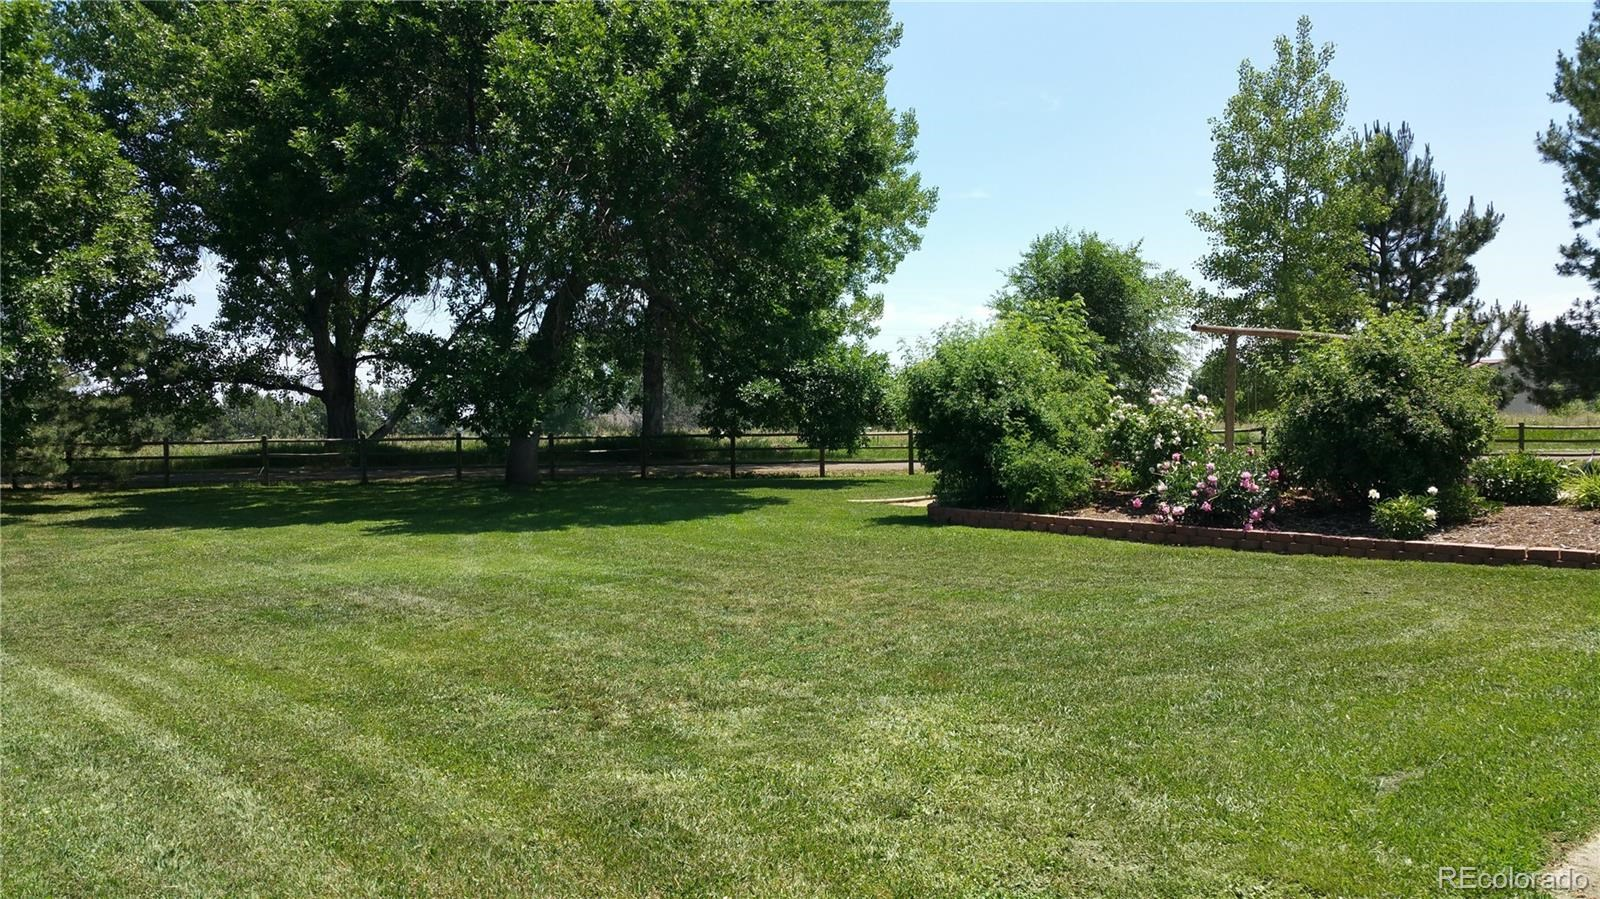 MLS# 4153082 - 7390 Ute Highway, Longmont, CO 80503